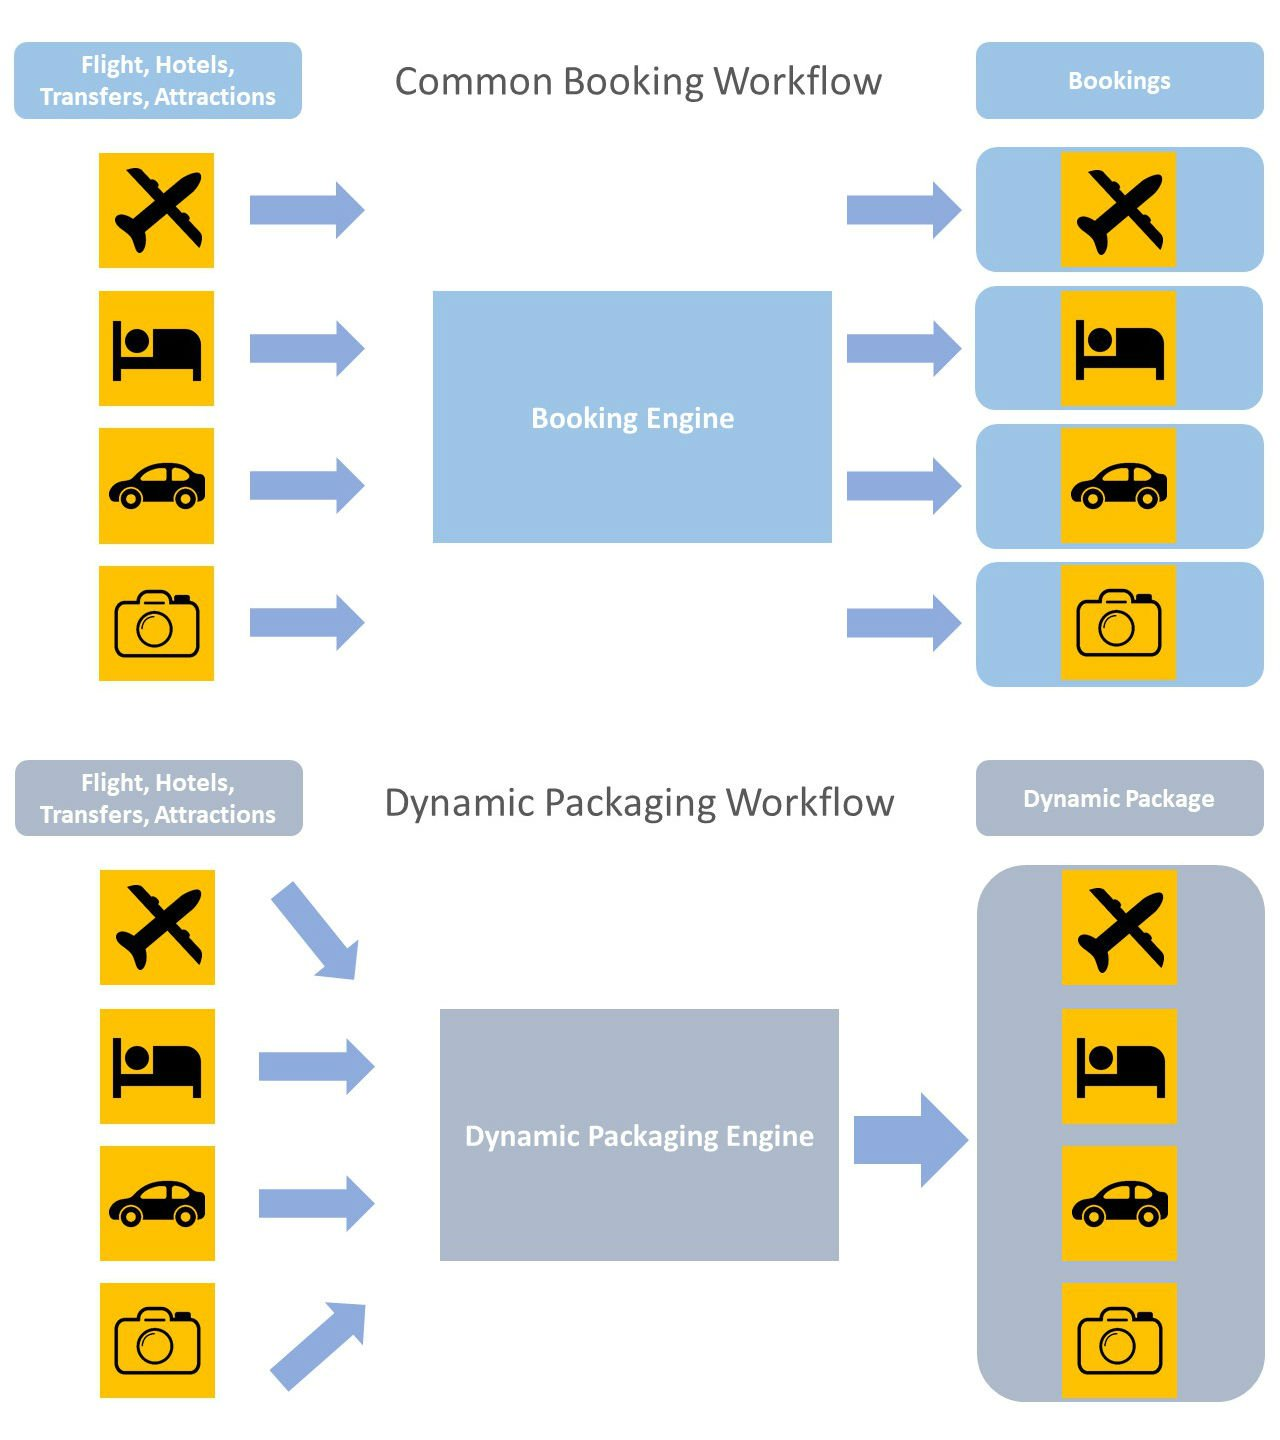 Booking Engine vs Dynamic Packaging Engine